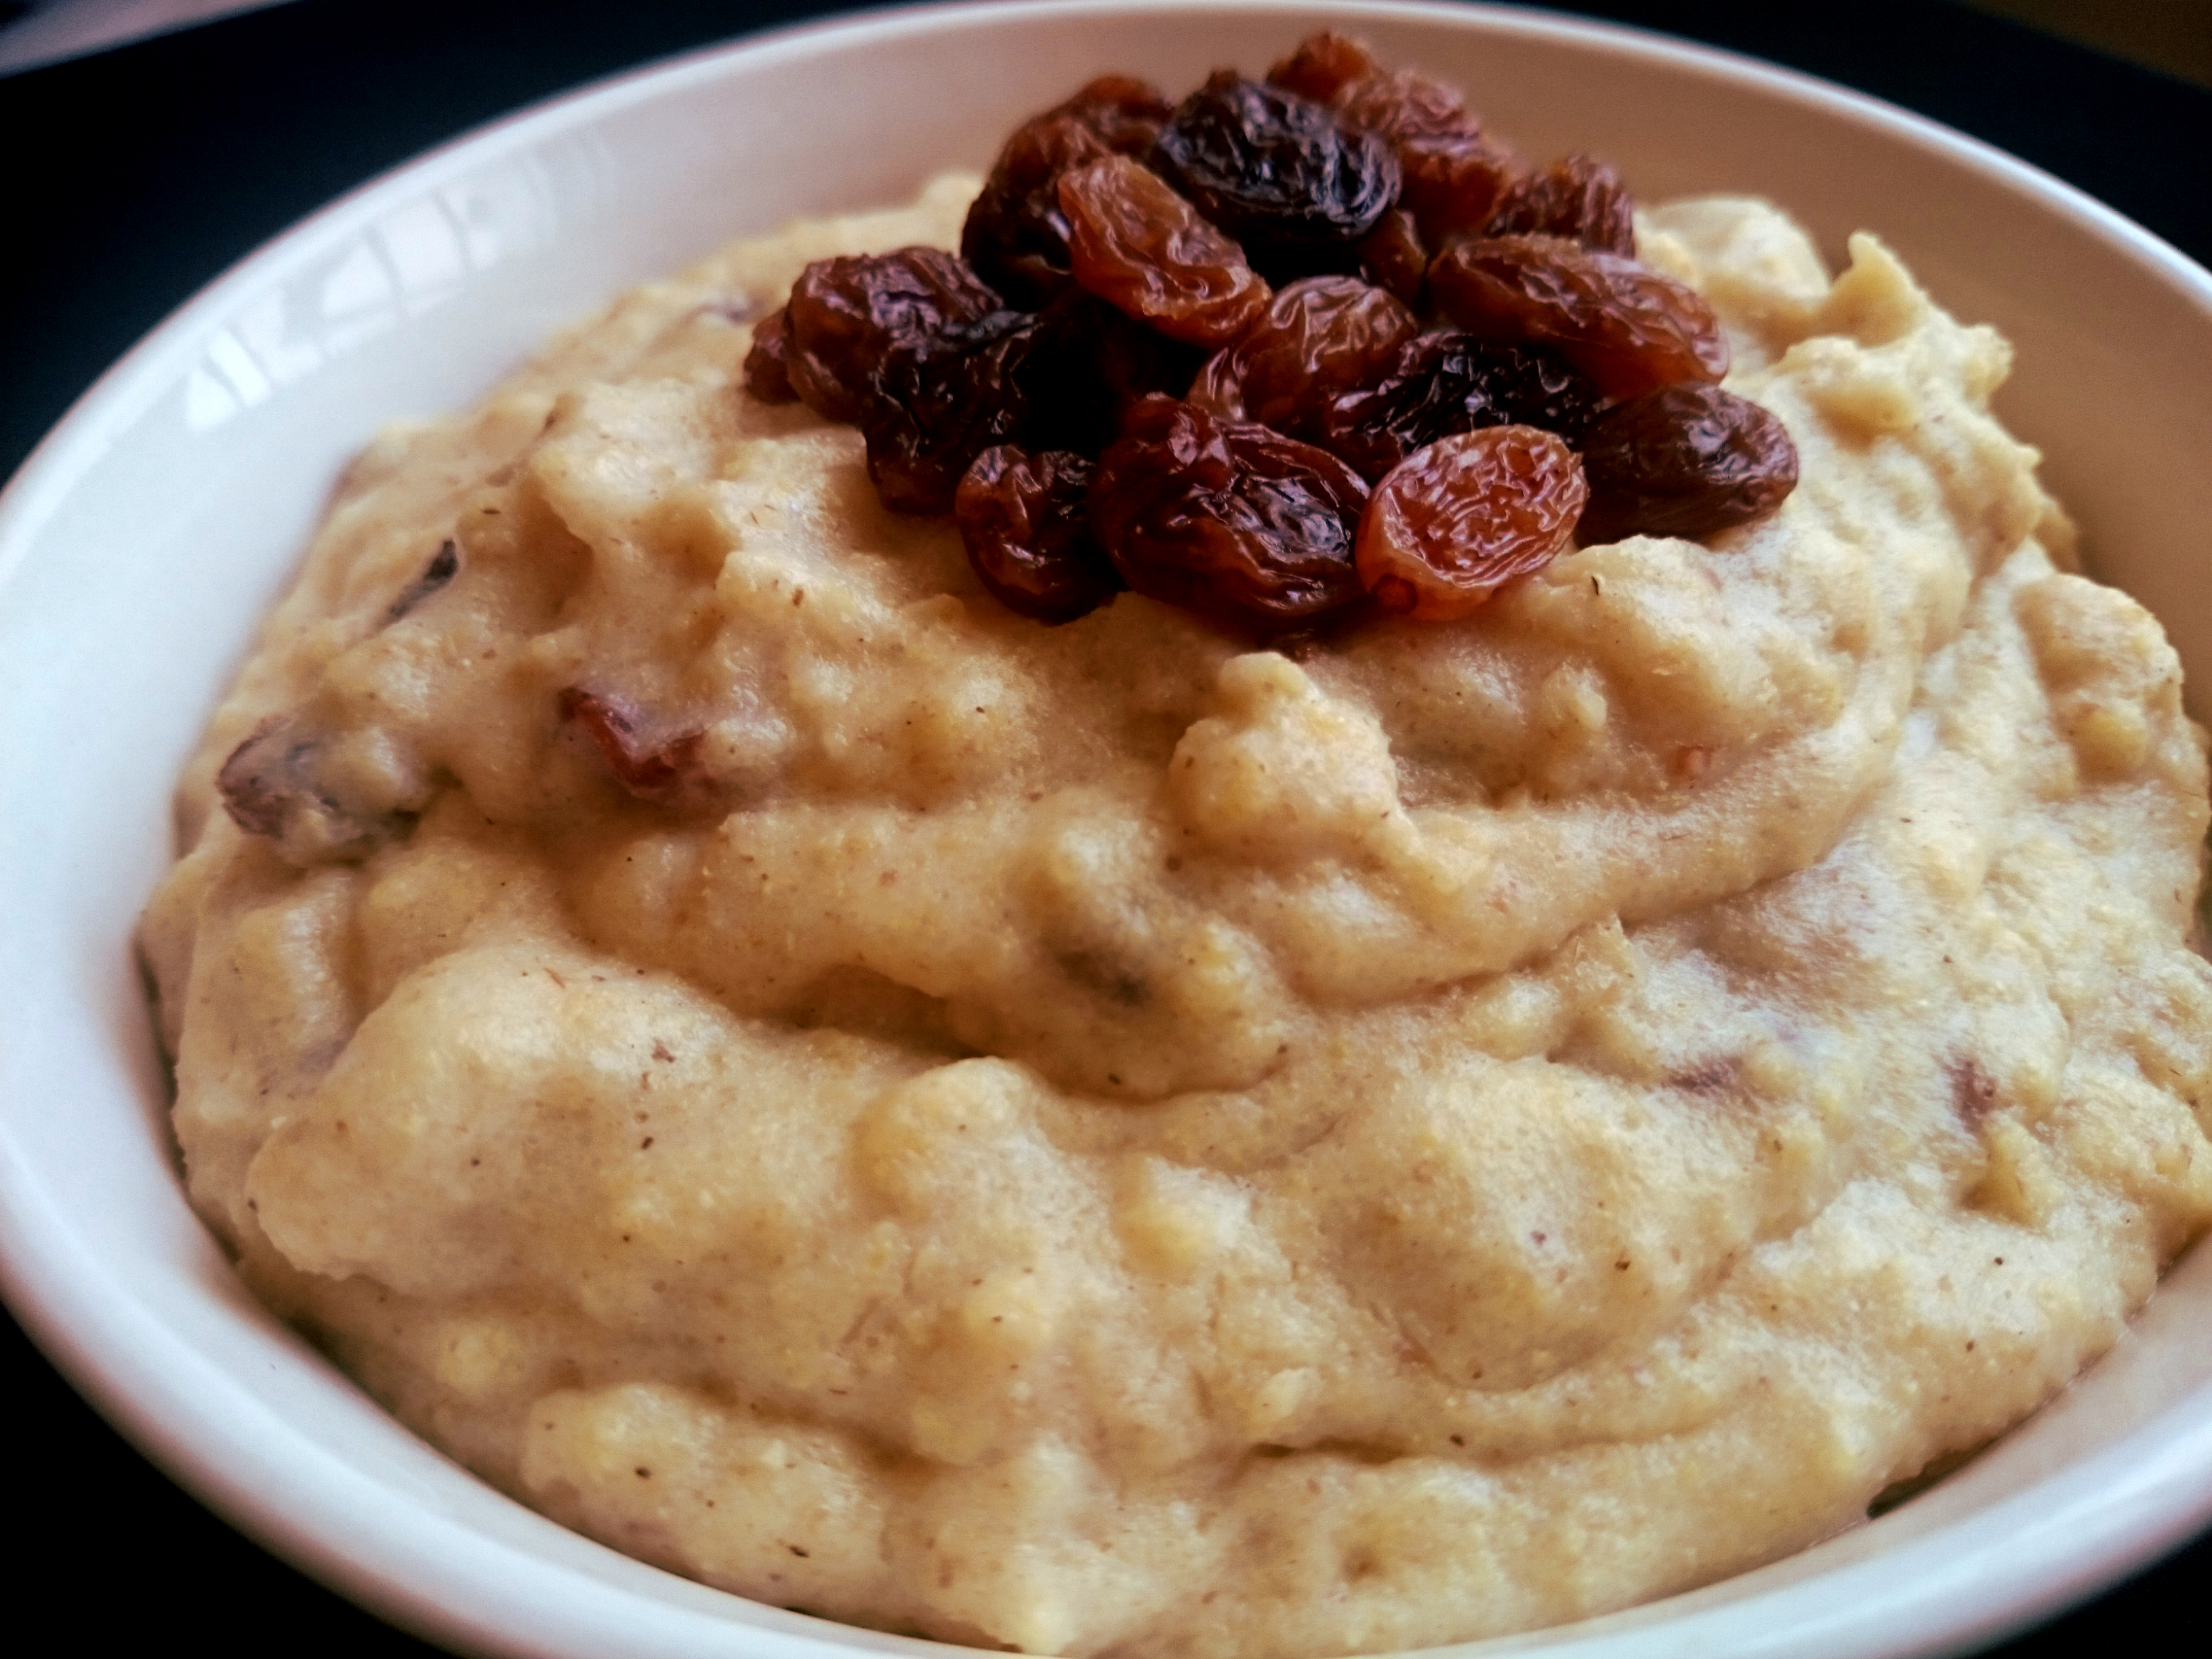 Grits for breakfast recipe vegirous september 2nd is americas national grits for breakfast day and in honor of this very special day i made grits and had it for breakfast grits is a native forumfinder Gallery